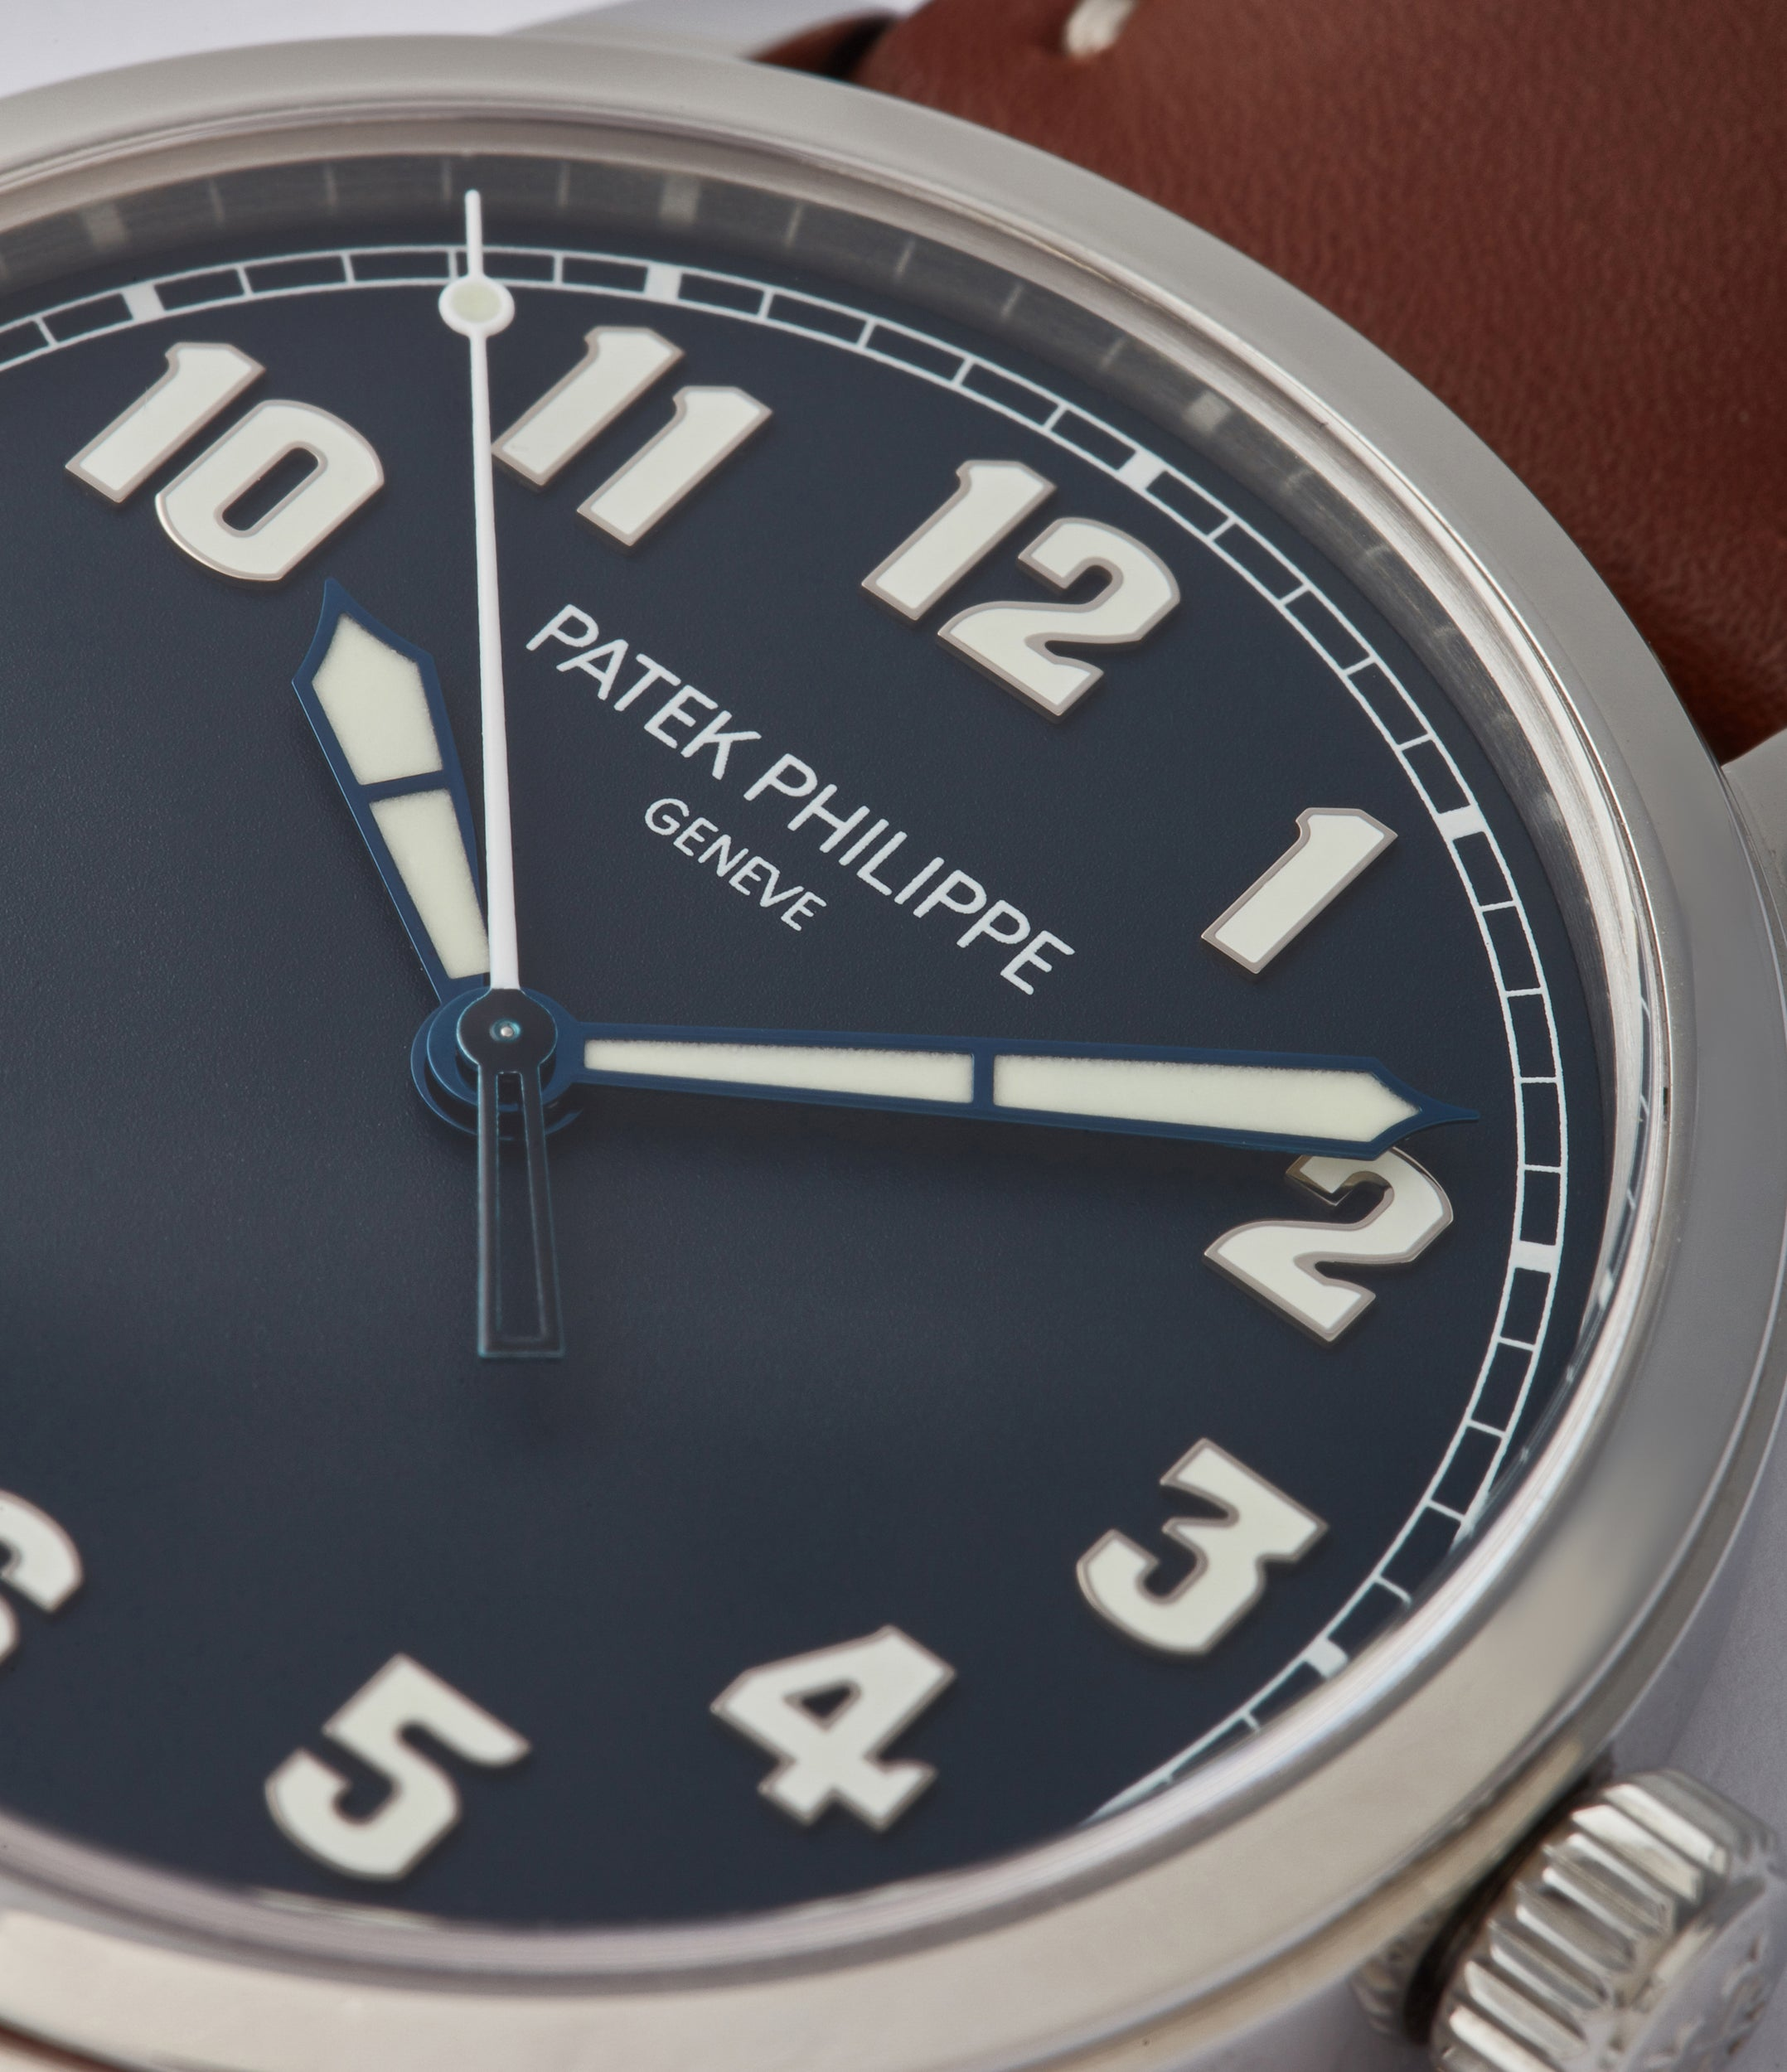 blue lacquer dial Patek Philippe Calatrava Pilot's 5522A-001 time-only pre-owned watch for sale online at A Collected Man London UK specialist